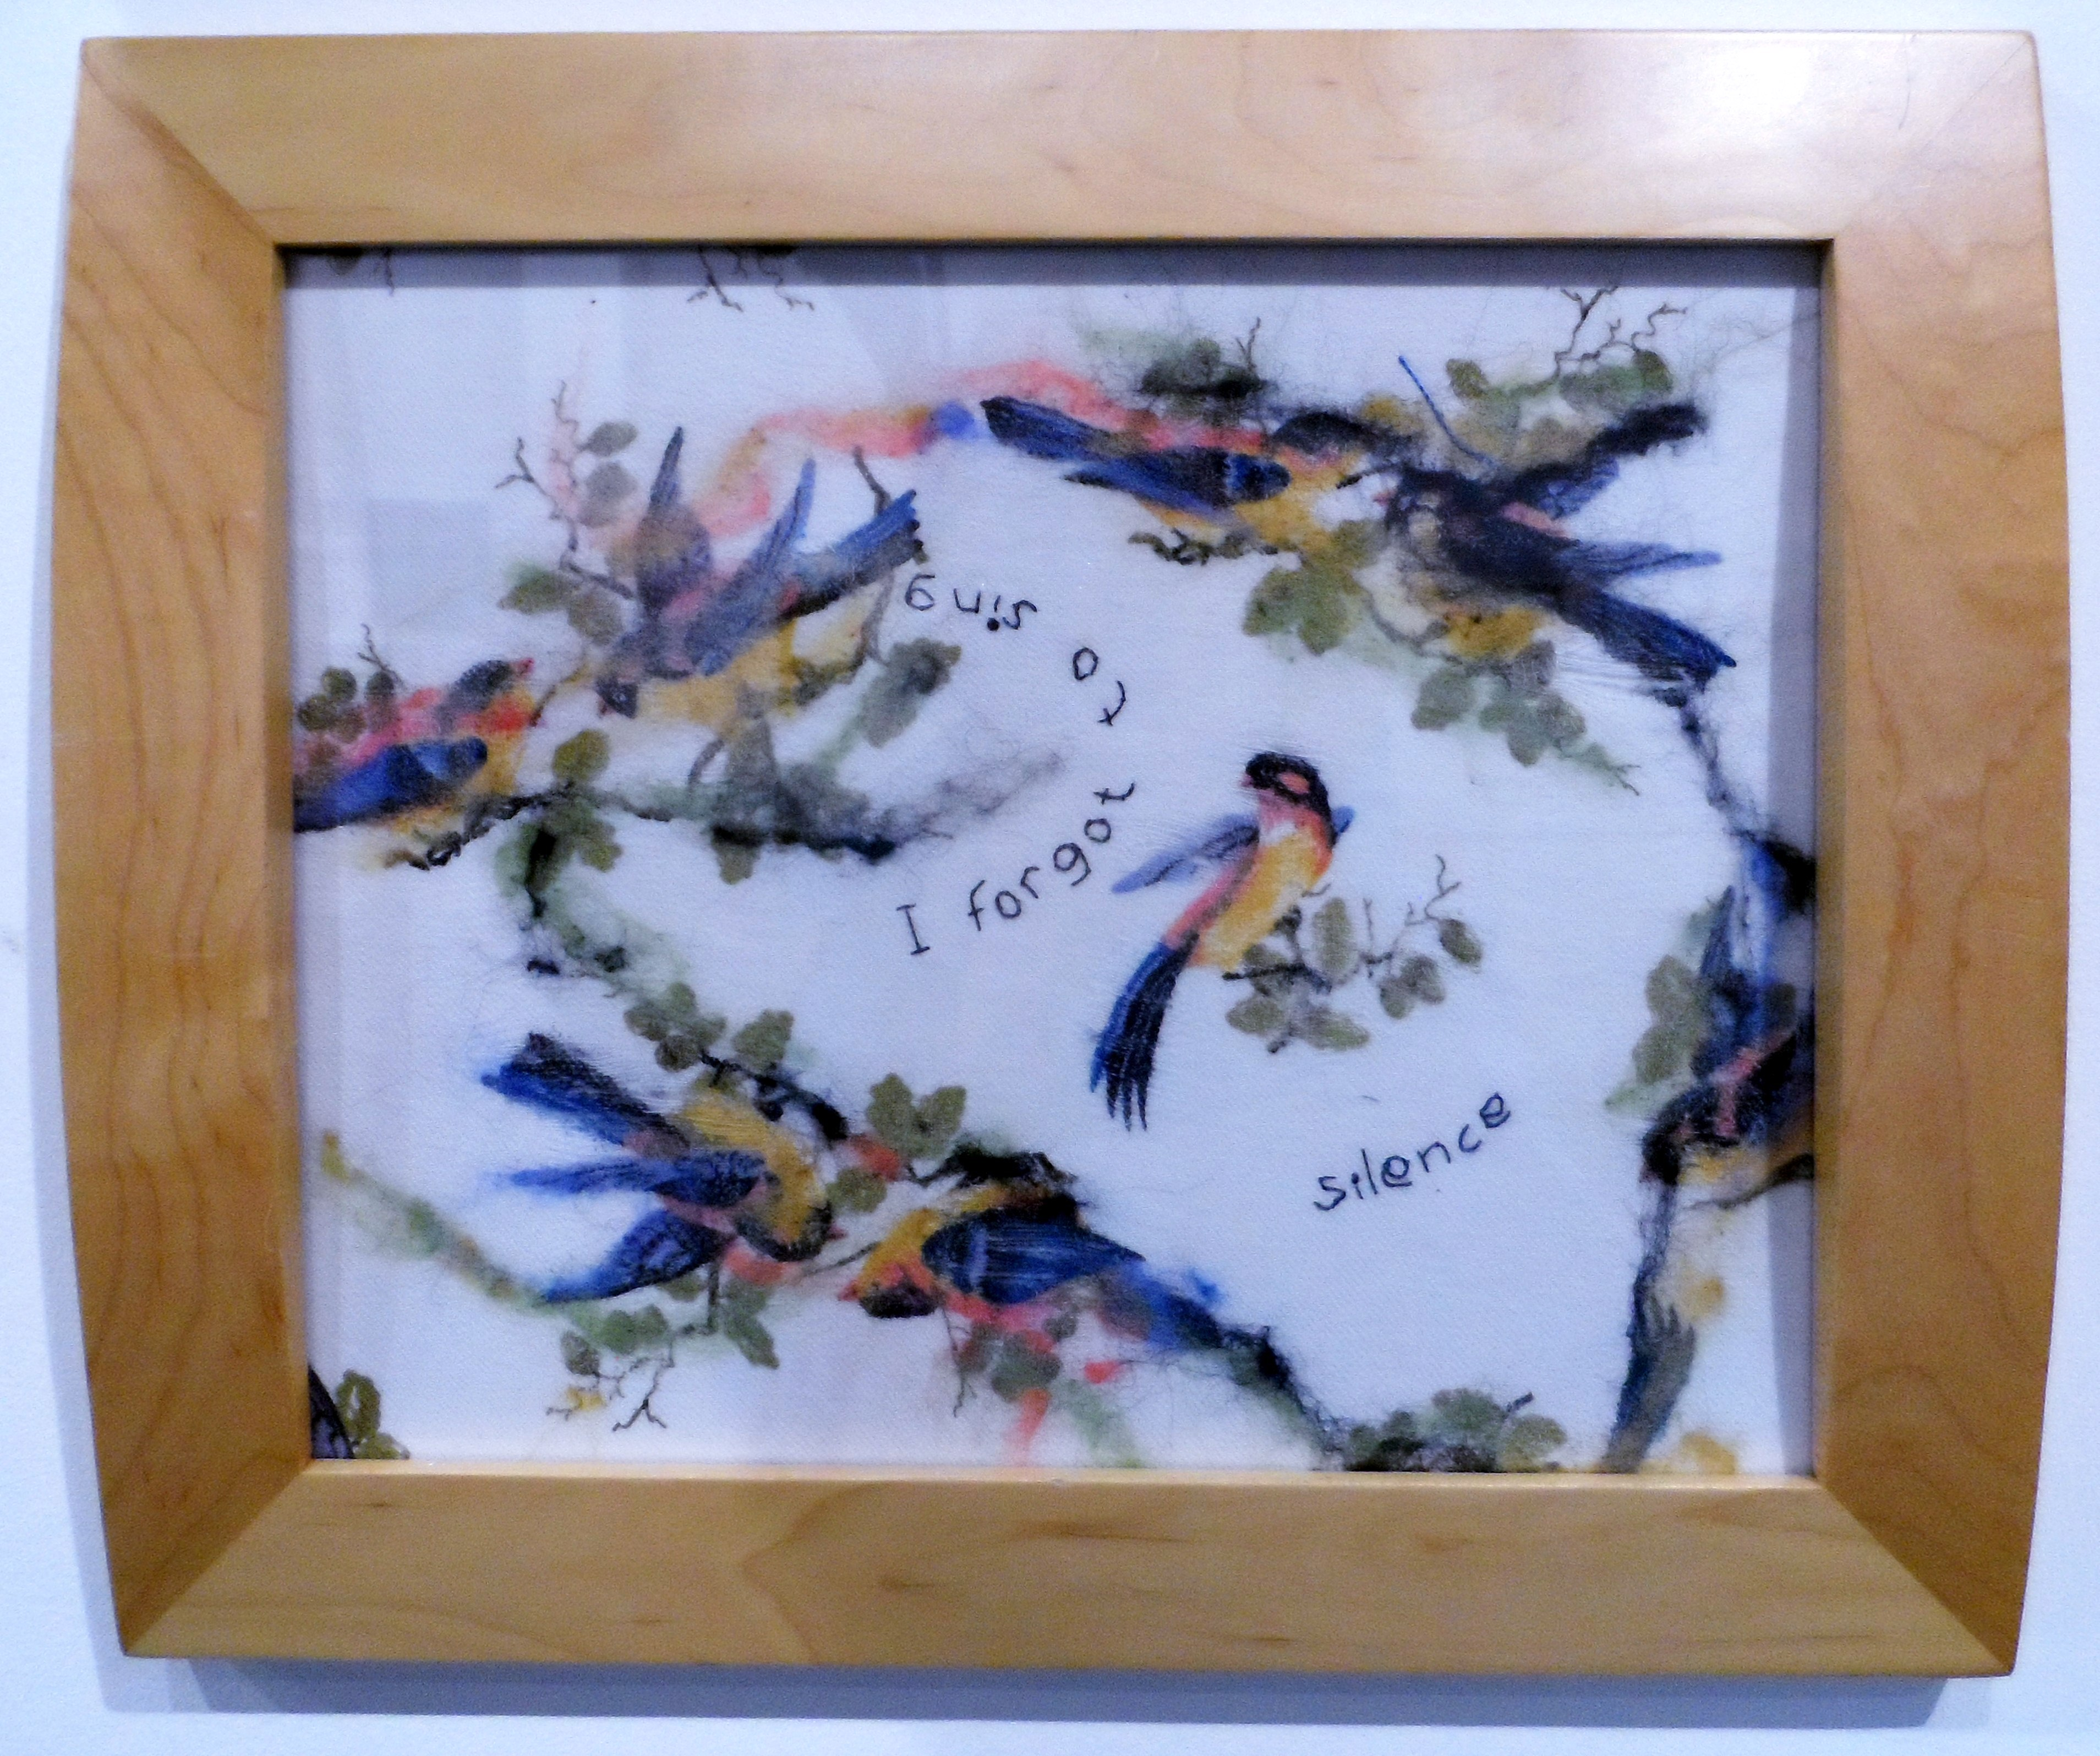 SILENT SONG by Janet Wilkinson, needle felt & stitch, Re-View Textile Group, Frodsham 2019